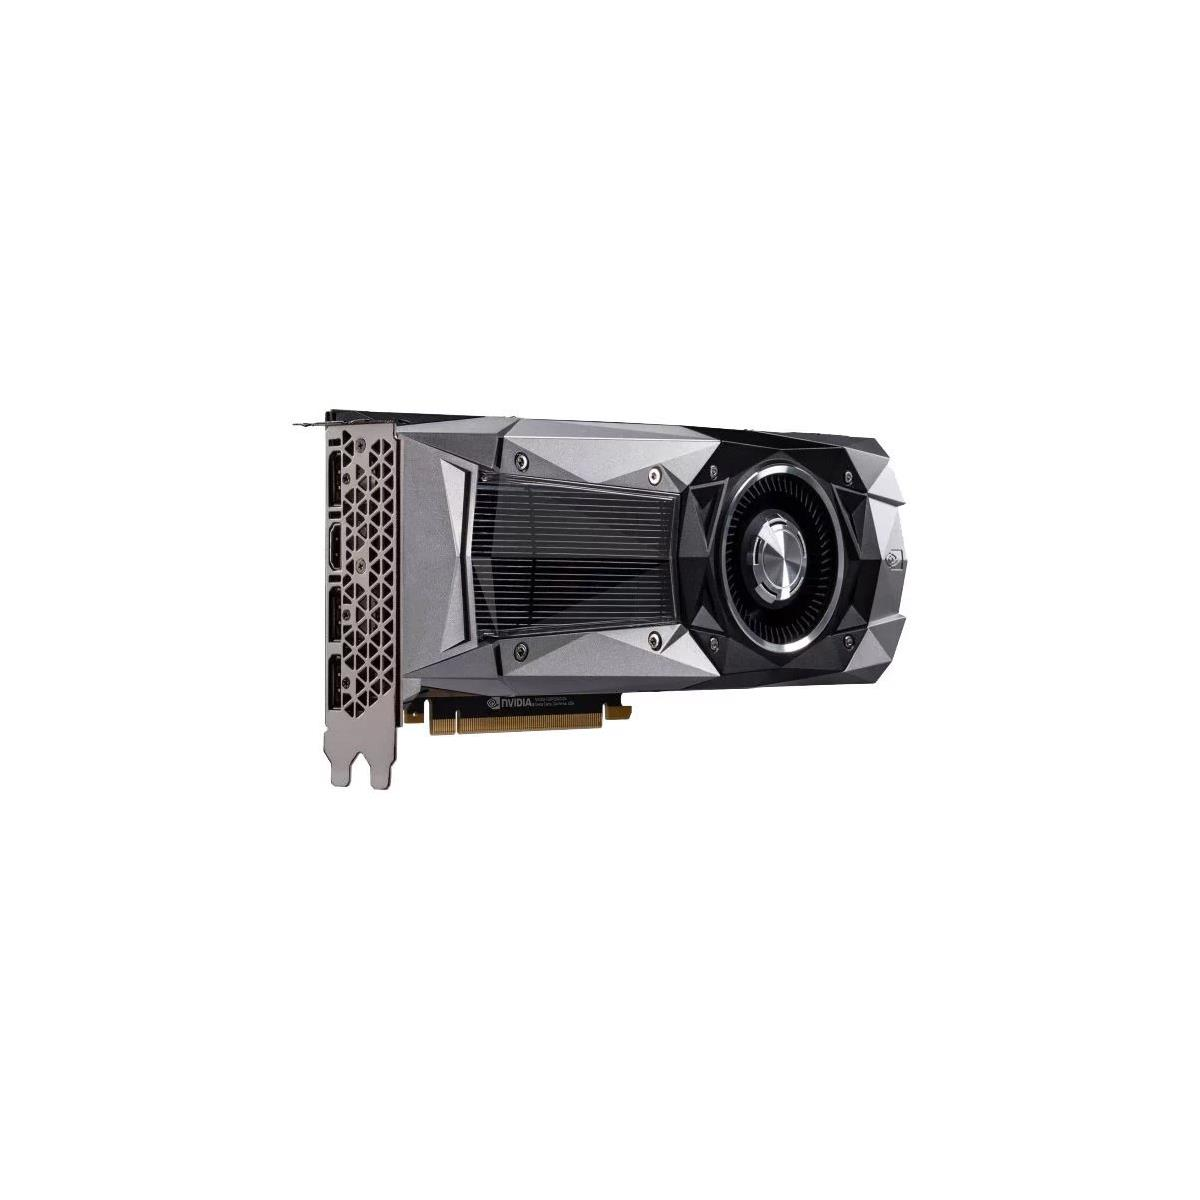 NVIDIA GeForce GTX 11 Turing GPU Prices Could Be Complicated